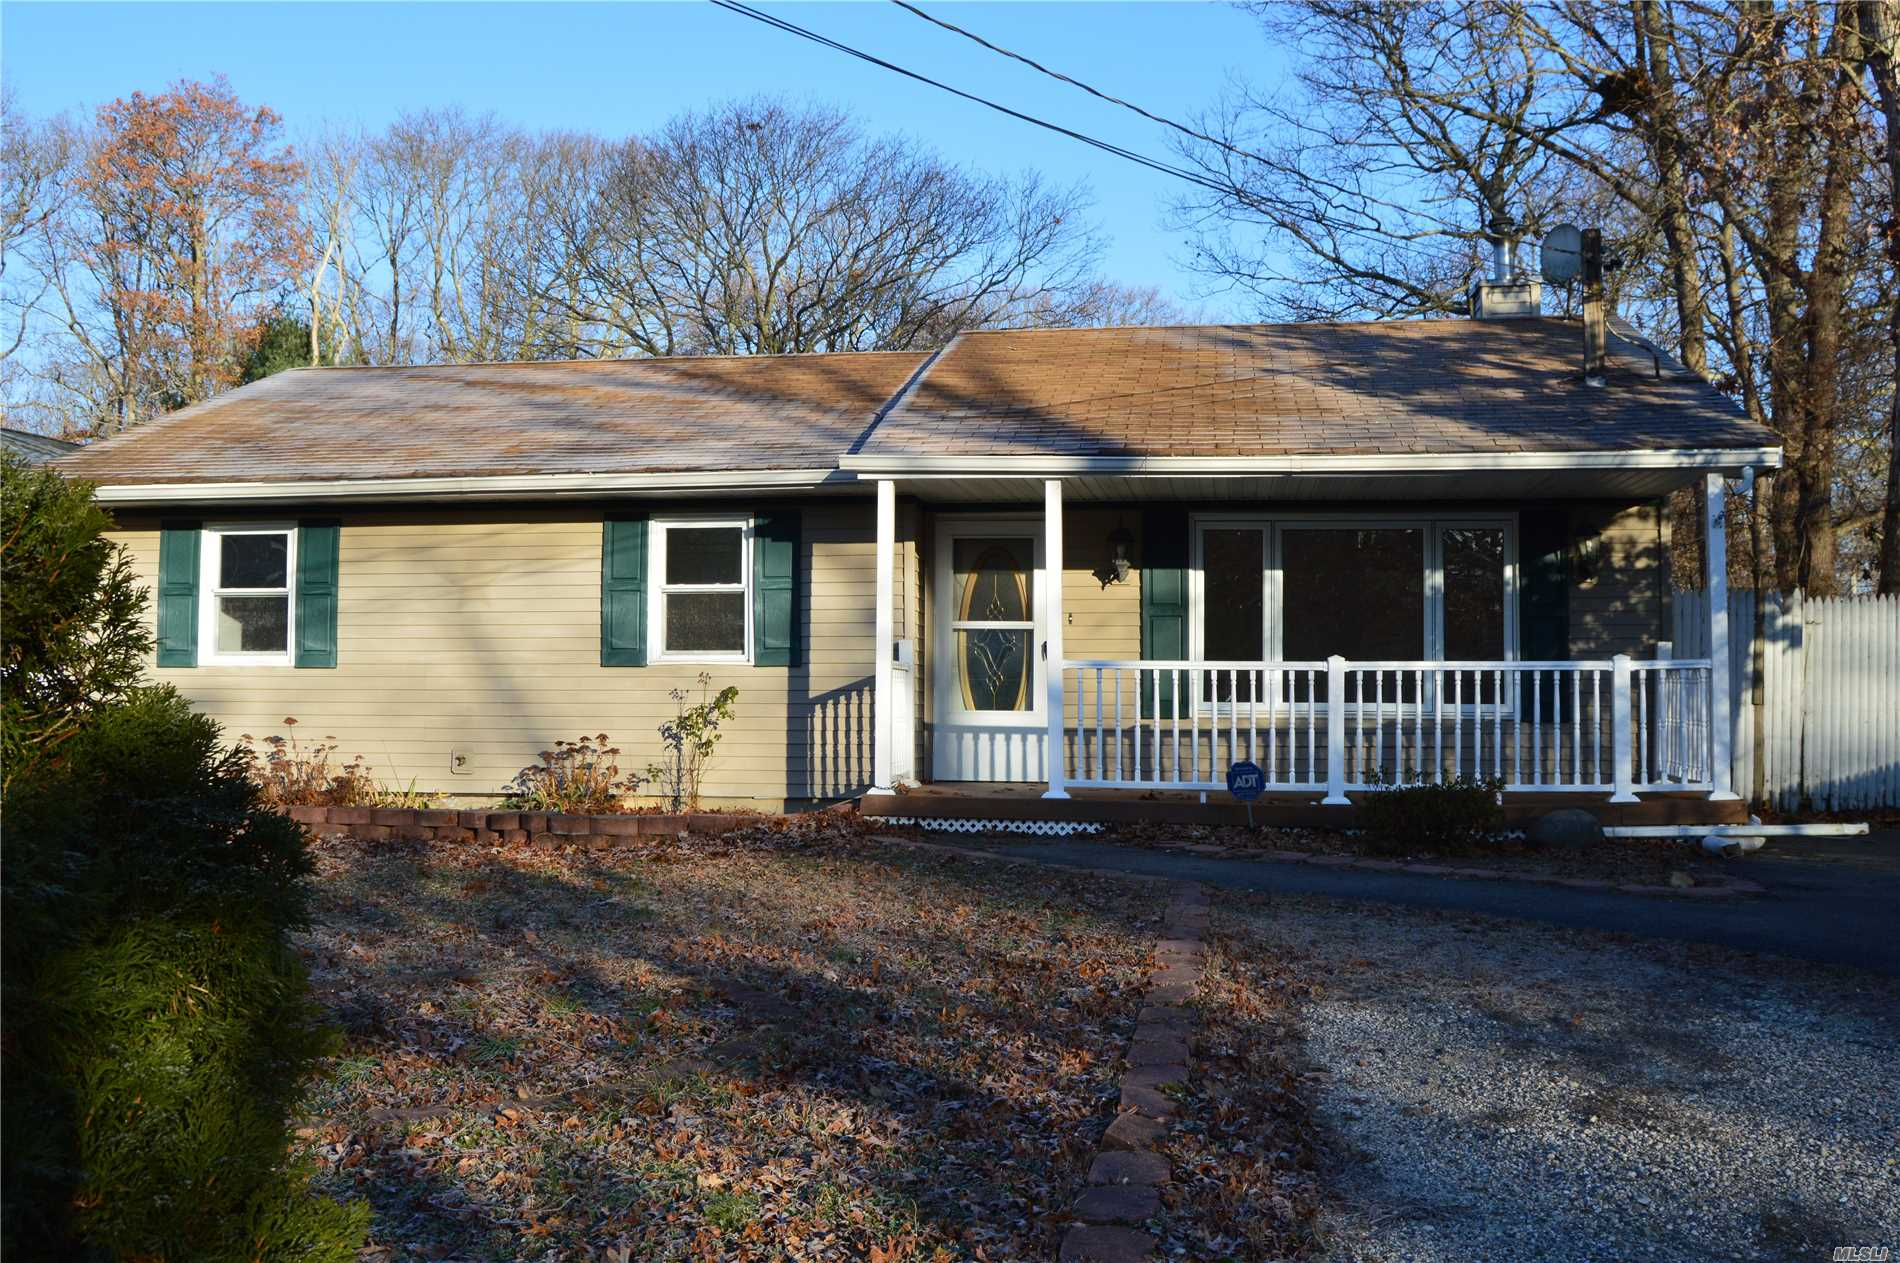 Newly Renovated Ranch In Mastic With Central Air And Brand New Carpeting! Updated Bathroom, Led High-Hats Throughout. Great First Time Home Buyer Opportunity!